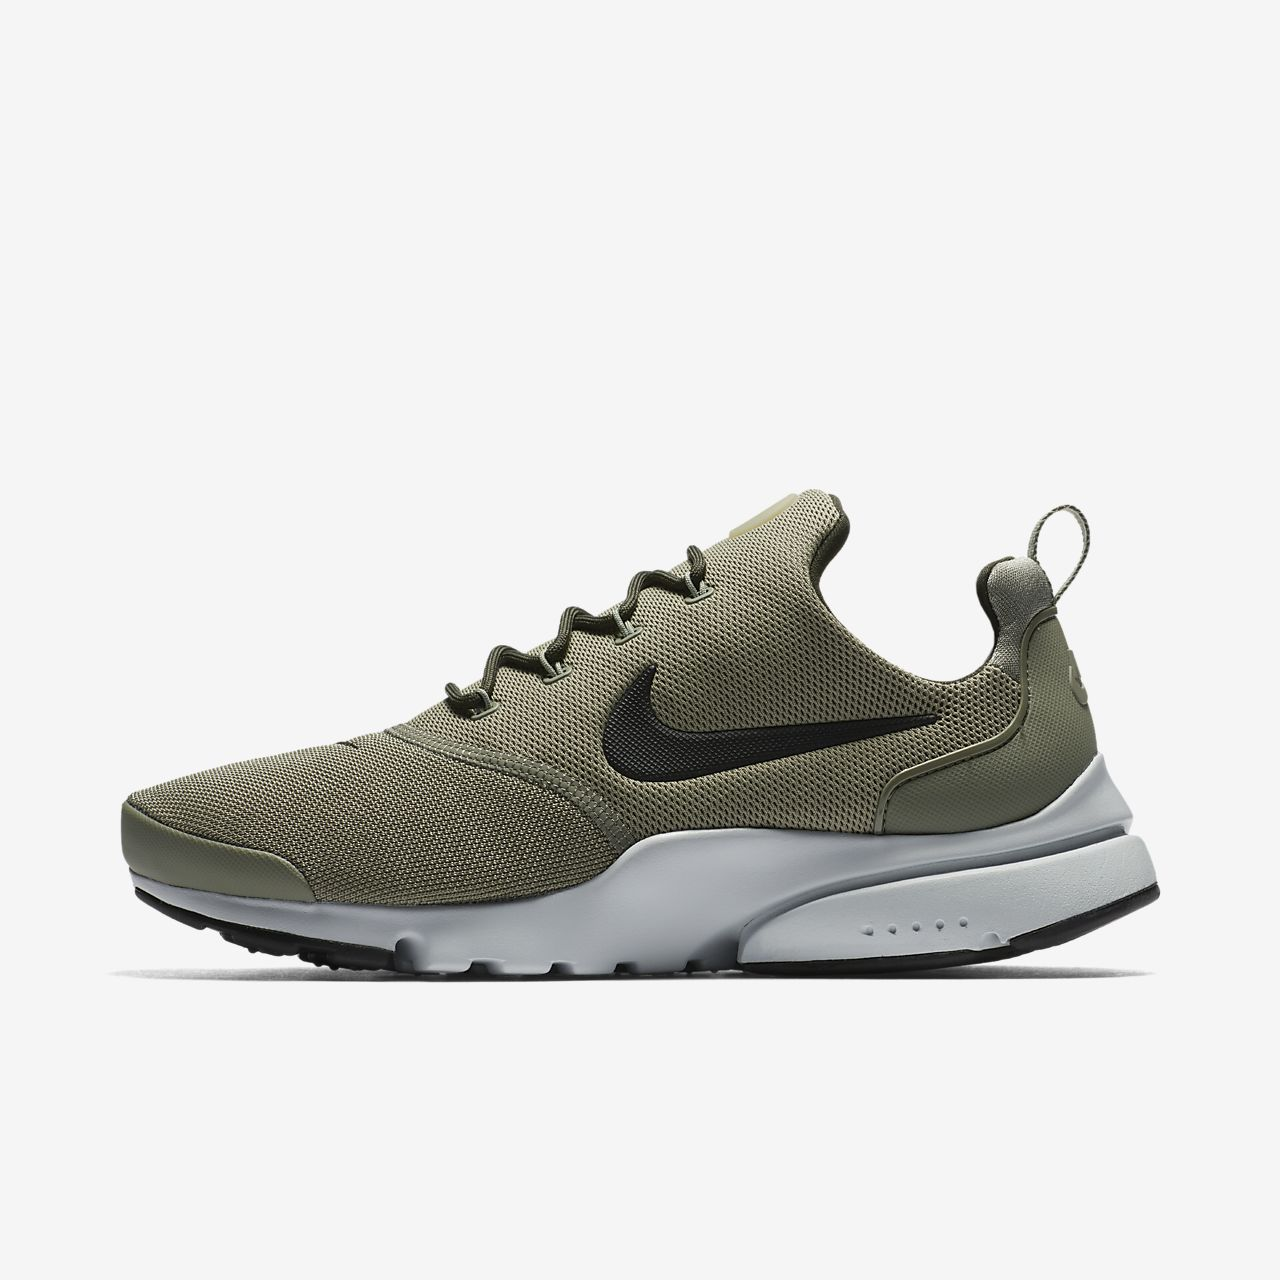 outlet store 152bc 300b6 ... Chaussure Nike Presto Fly pour Homme